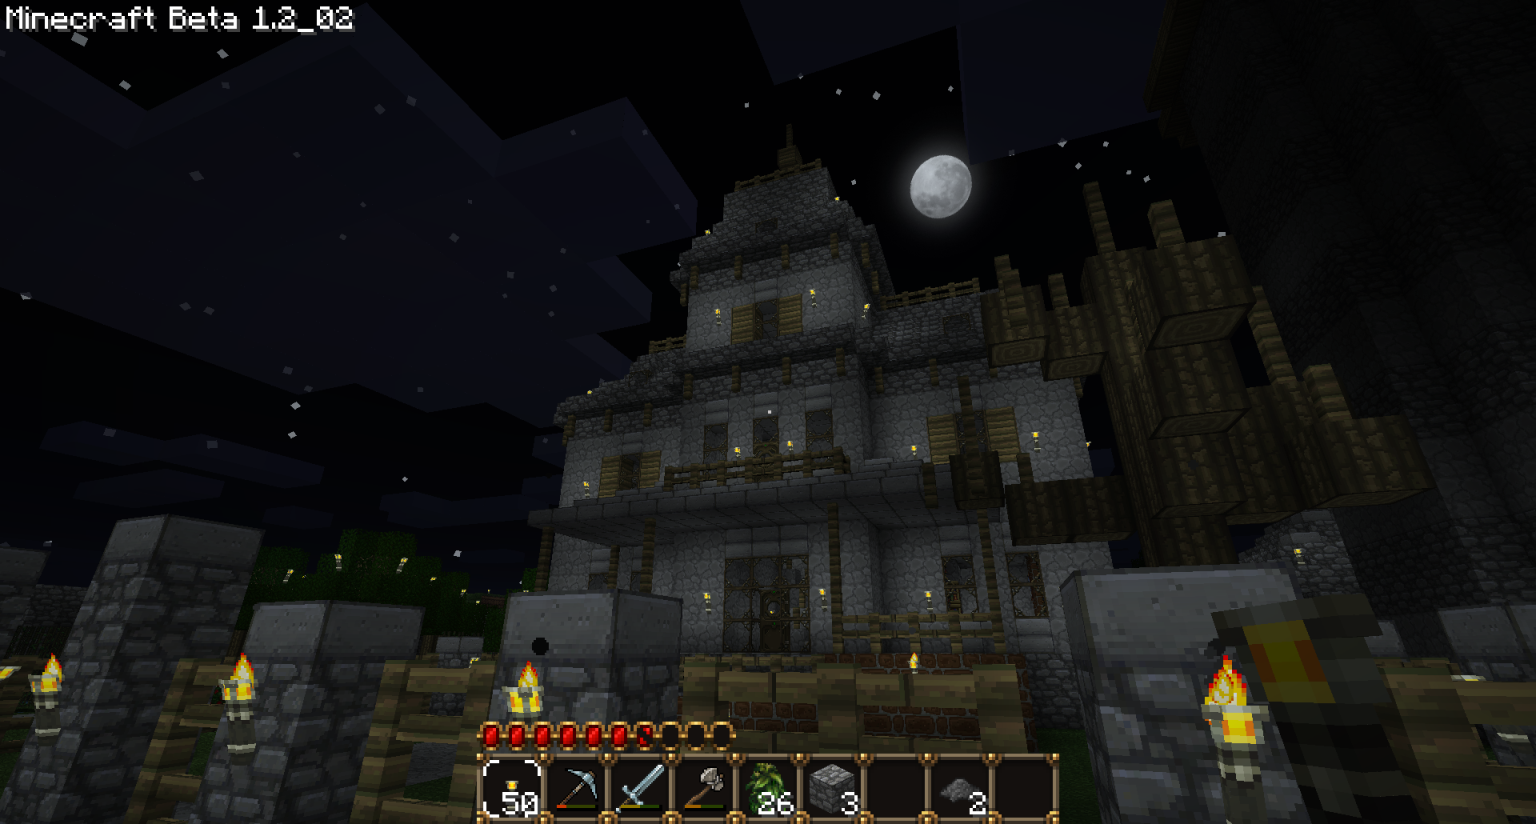 minecraft haunted house   minecraft ideas. minecraft haunted house   minecraft ideas   Geek   Pinterest